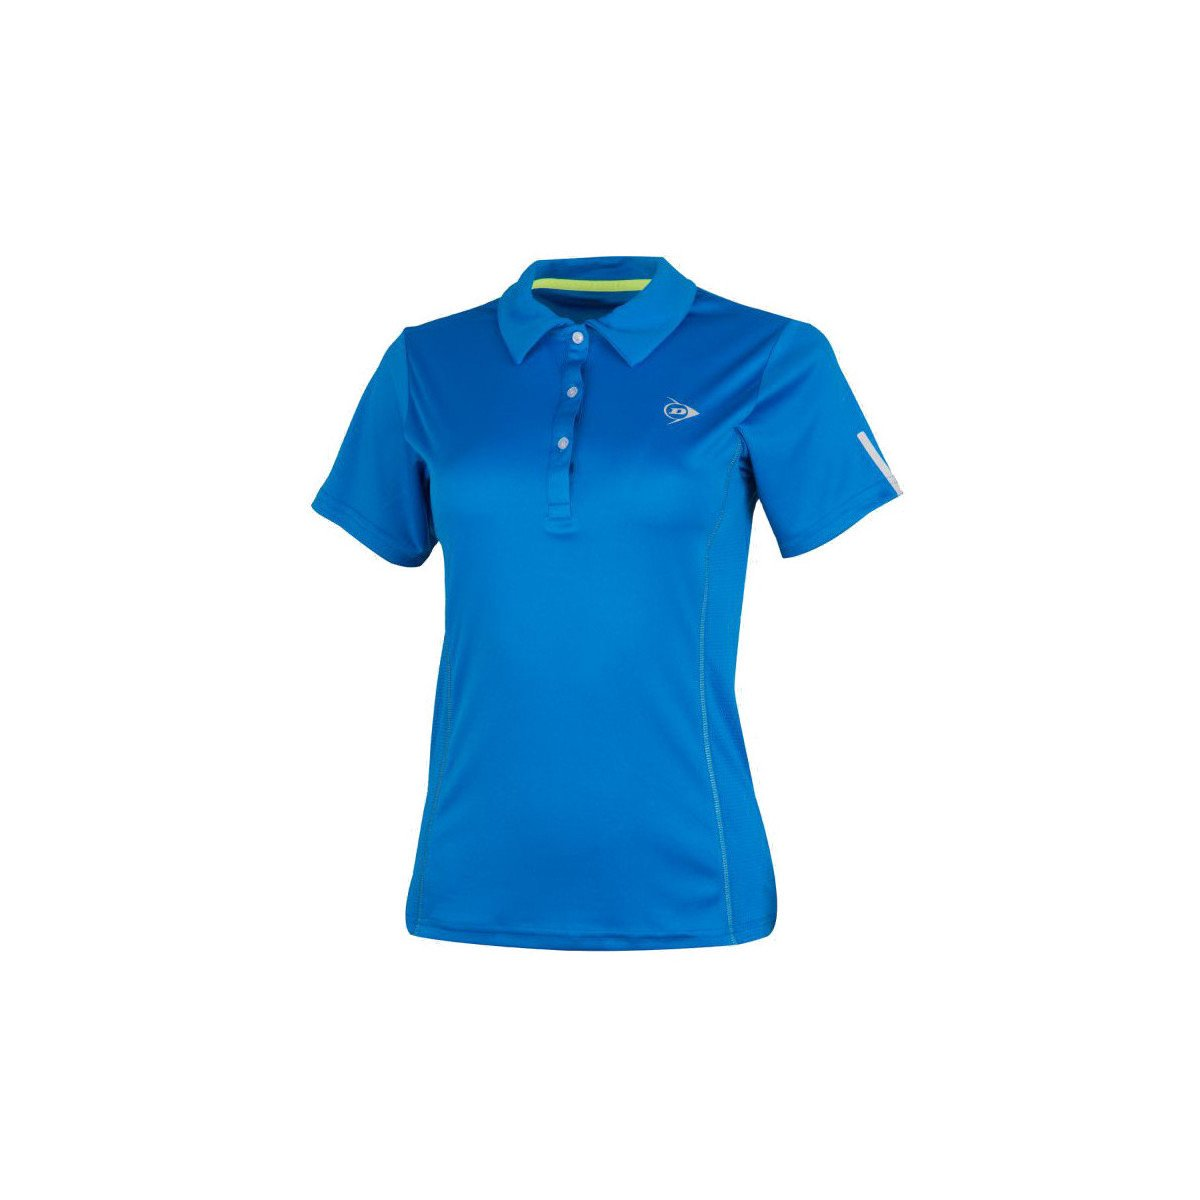 Dunlop Women's Club Collection Polo Tennis Shirt (Blue)